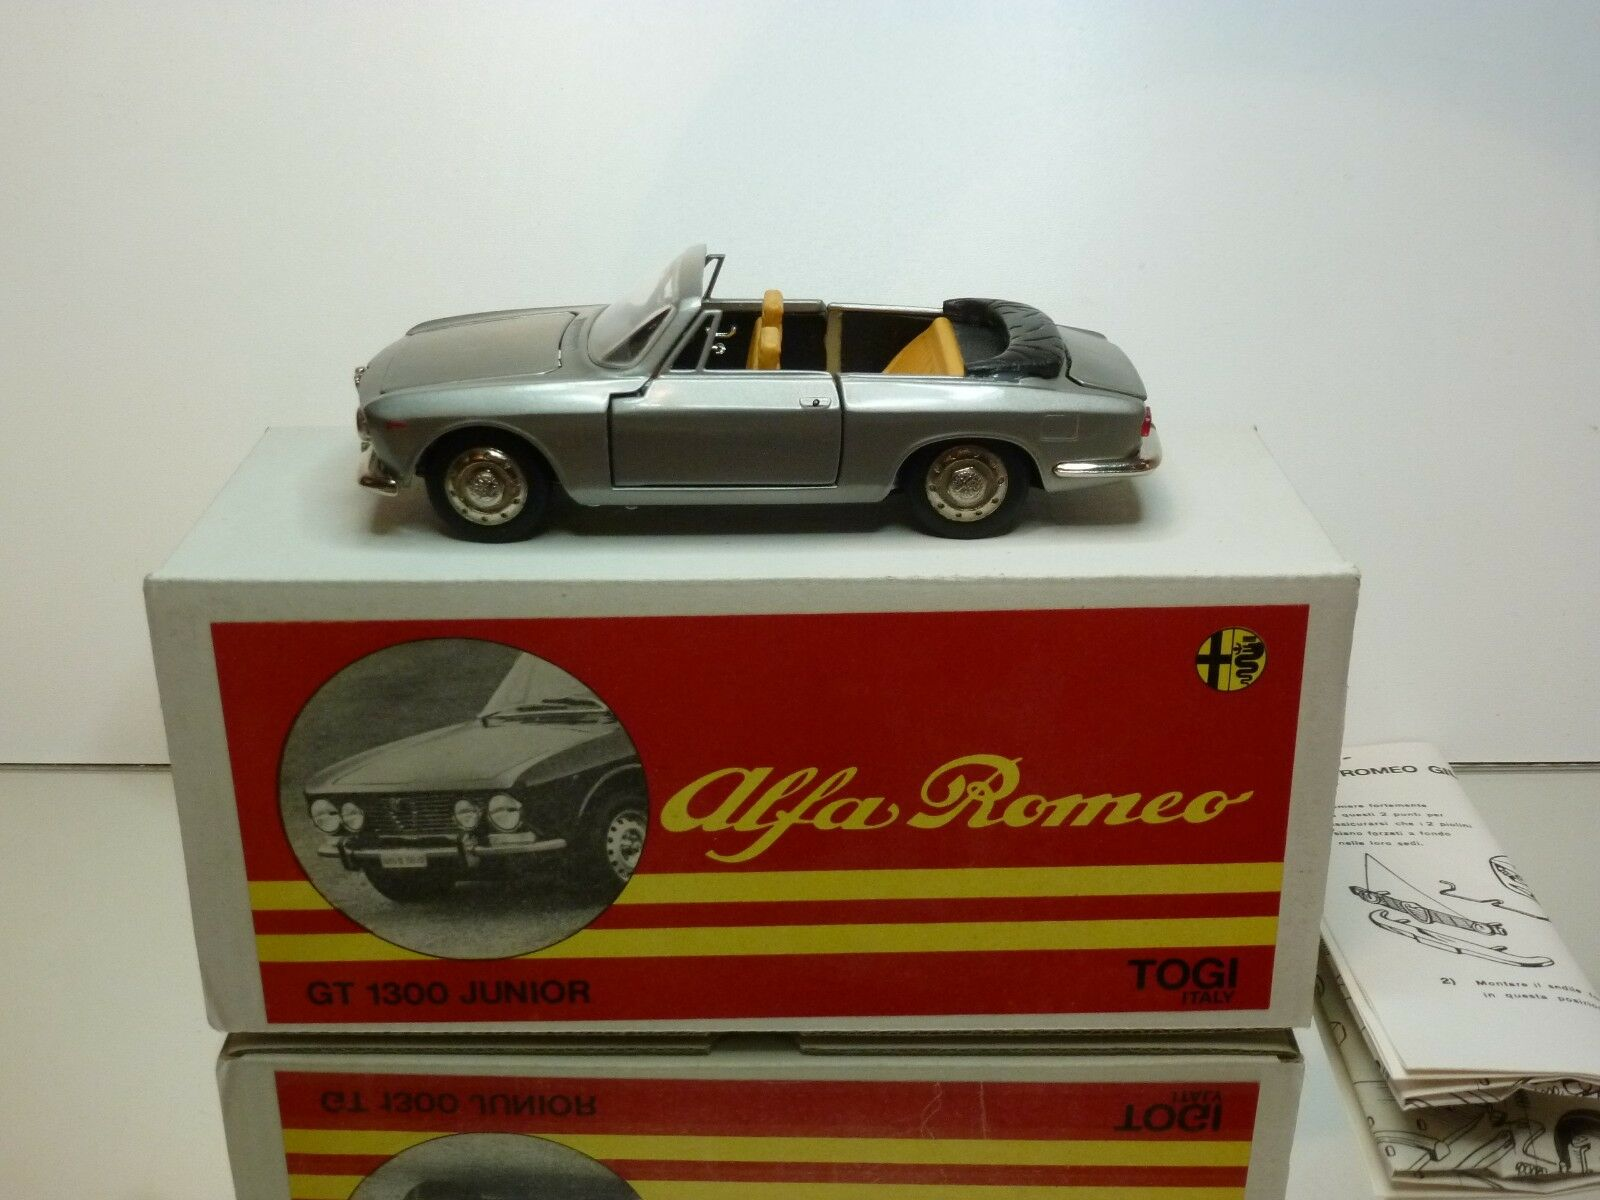 TOGI 8 65 ALFA ROMEO GIULIA GT 1300 JUNIOR CABRIOLET - 1 23 RARE - GOOD IN BOX